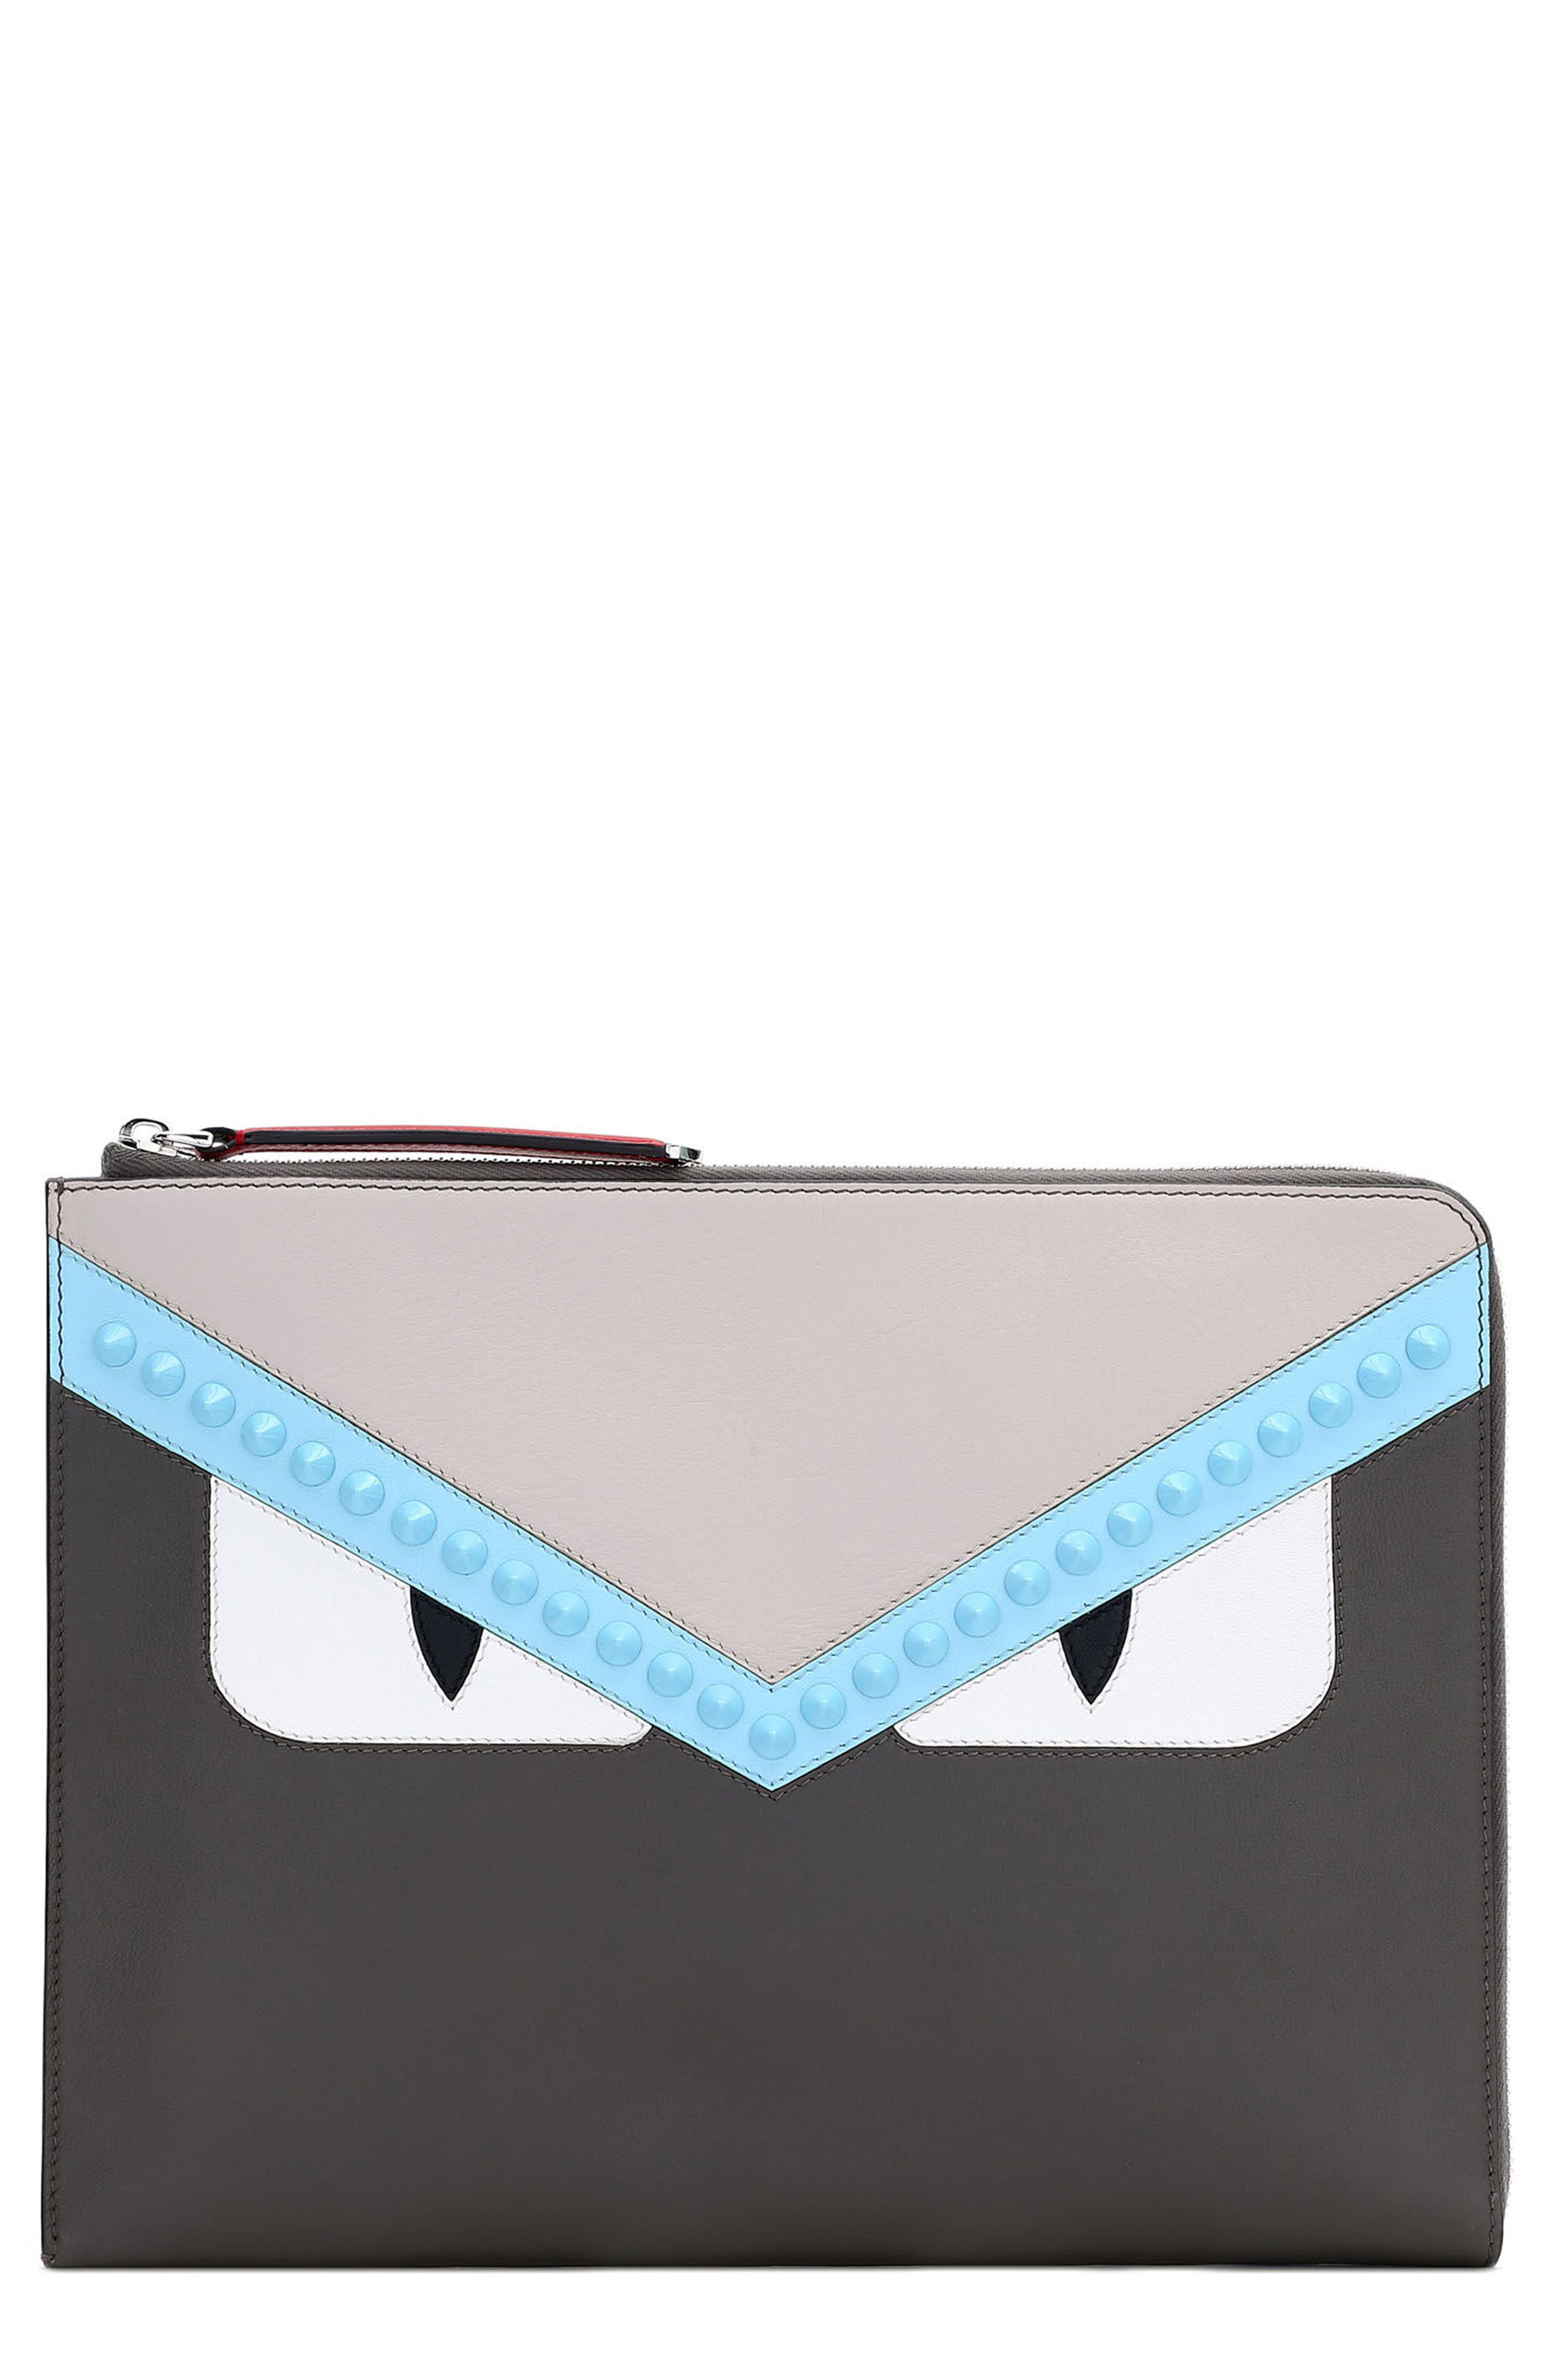 Main Image - Fendi Large Monster Leather Zip Pouch